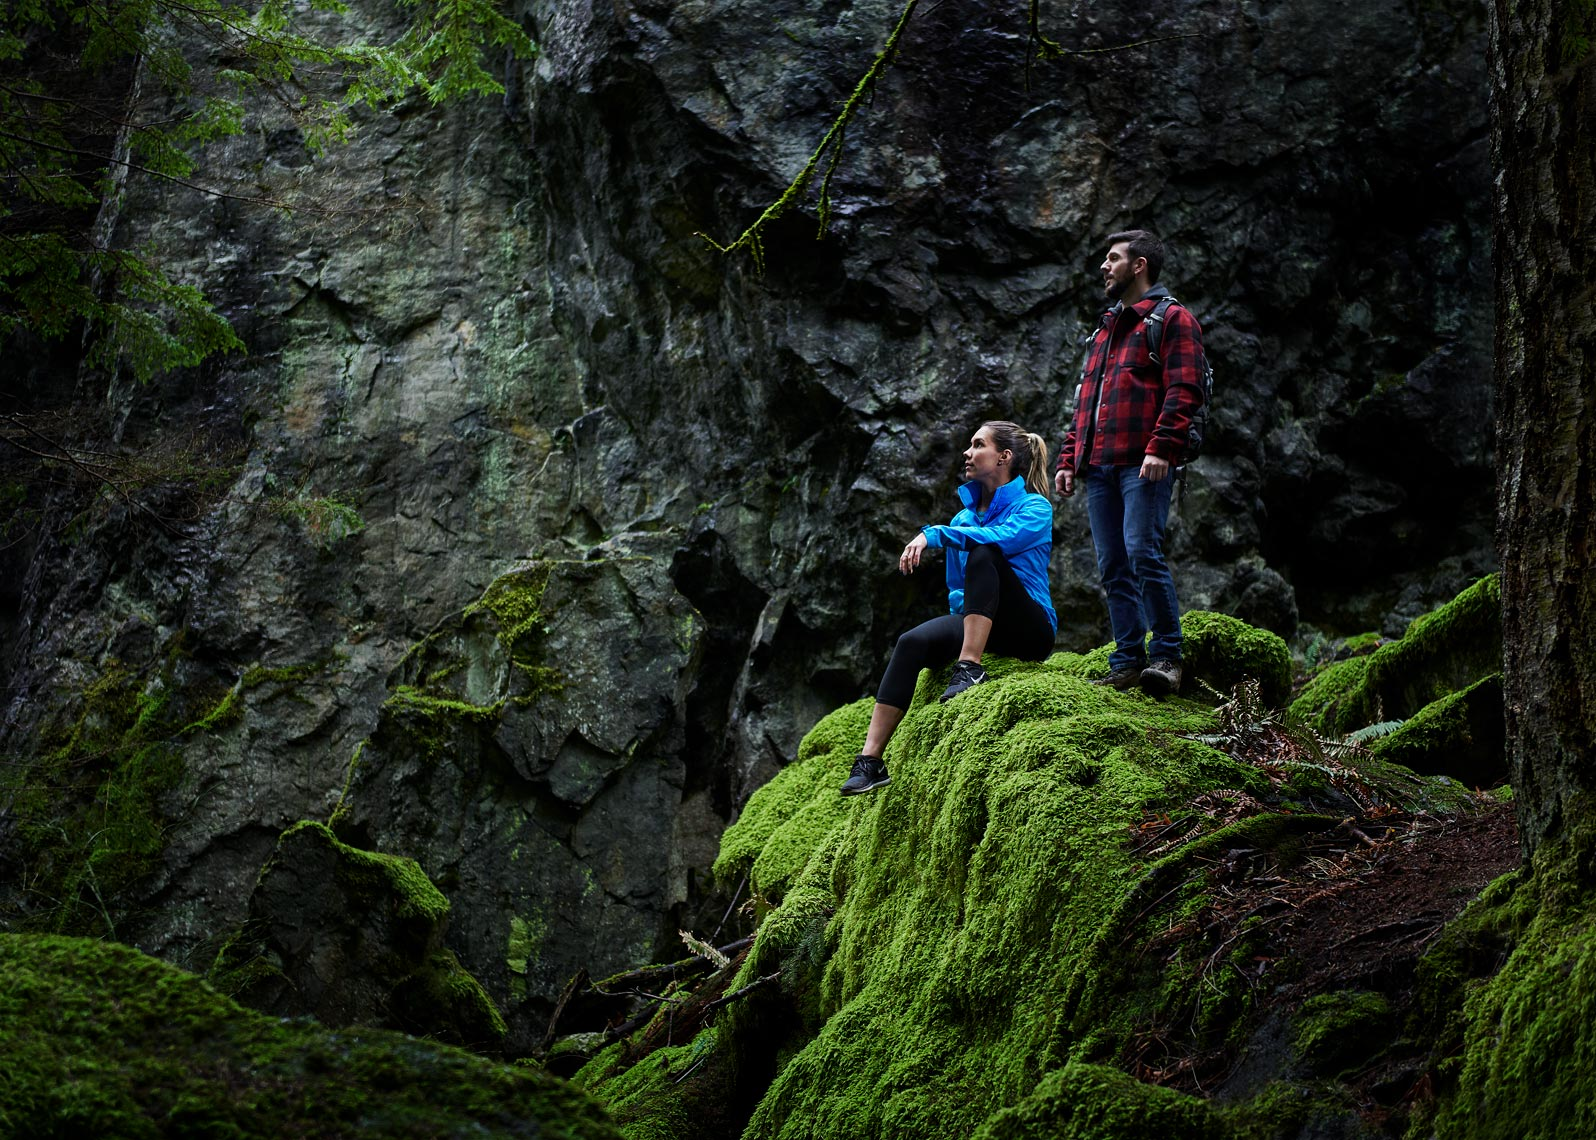 Forest bathing during photography shoot for a Seattle company